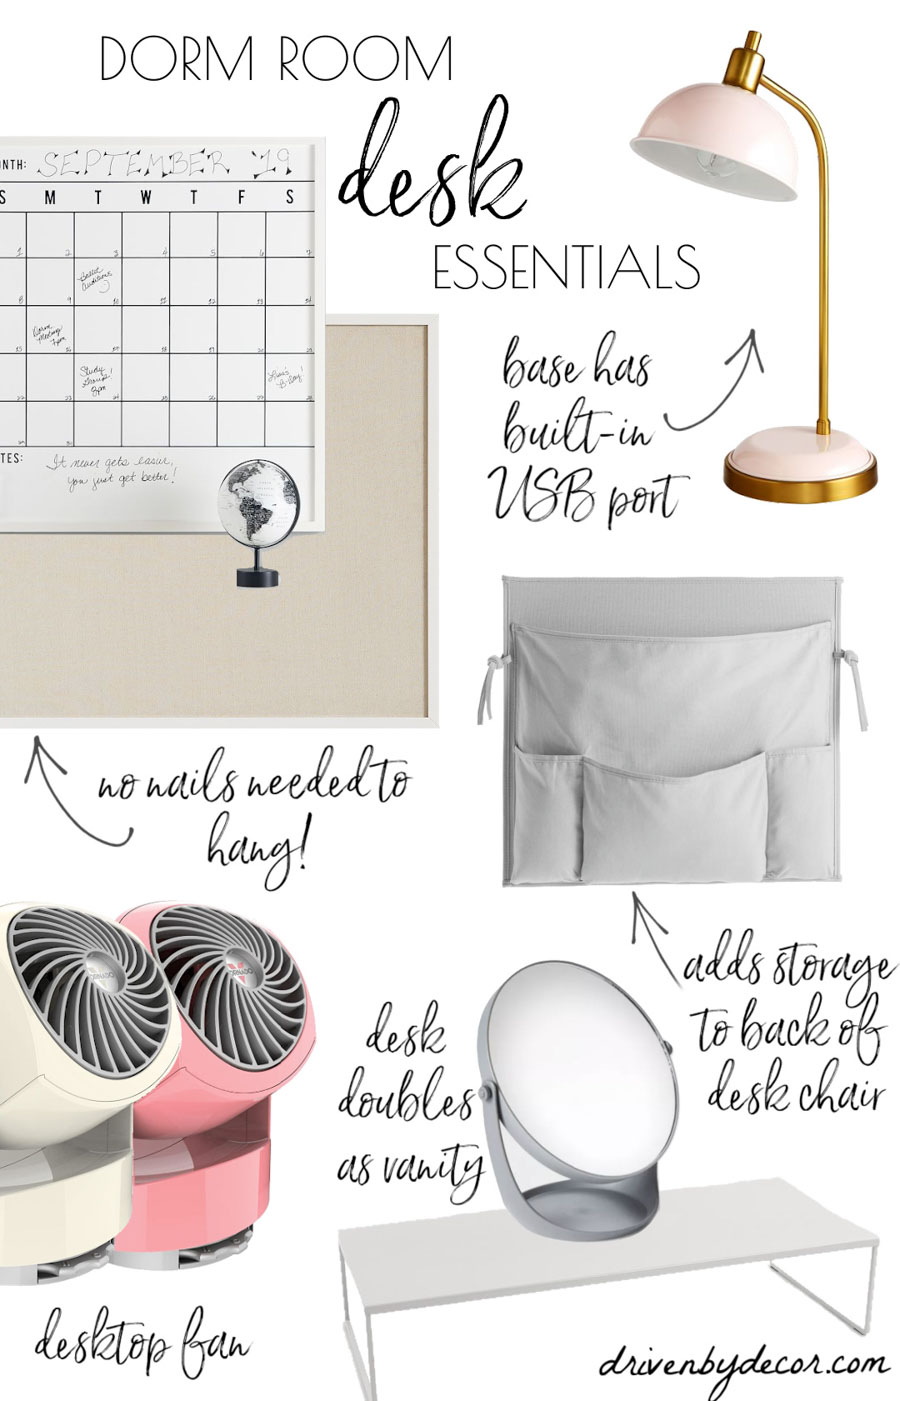 All the essentials you need for your dorm room desk!